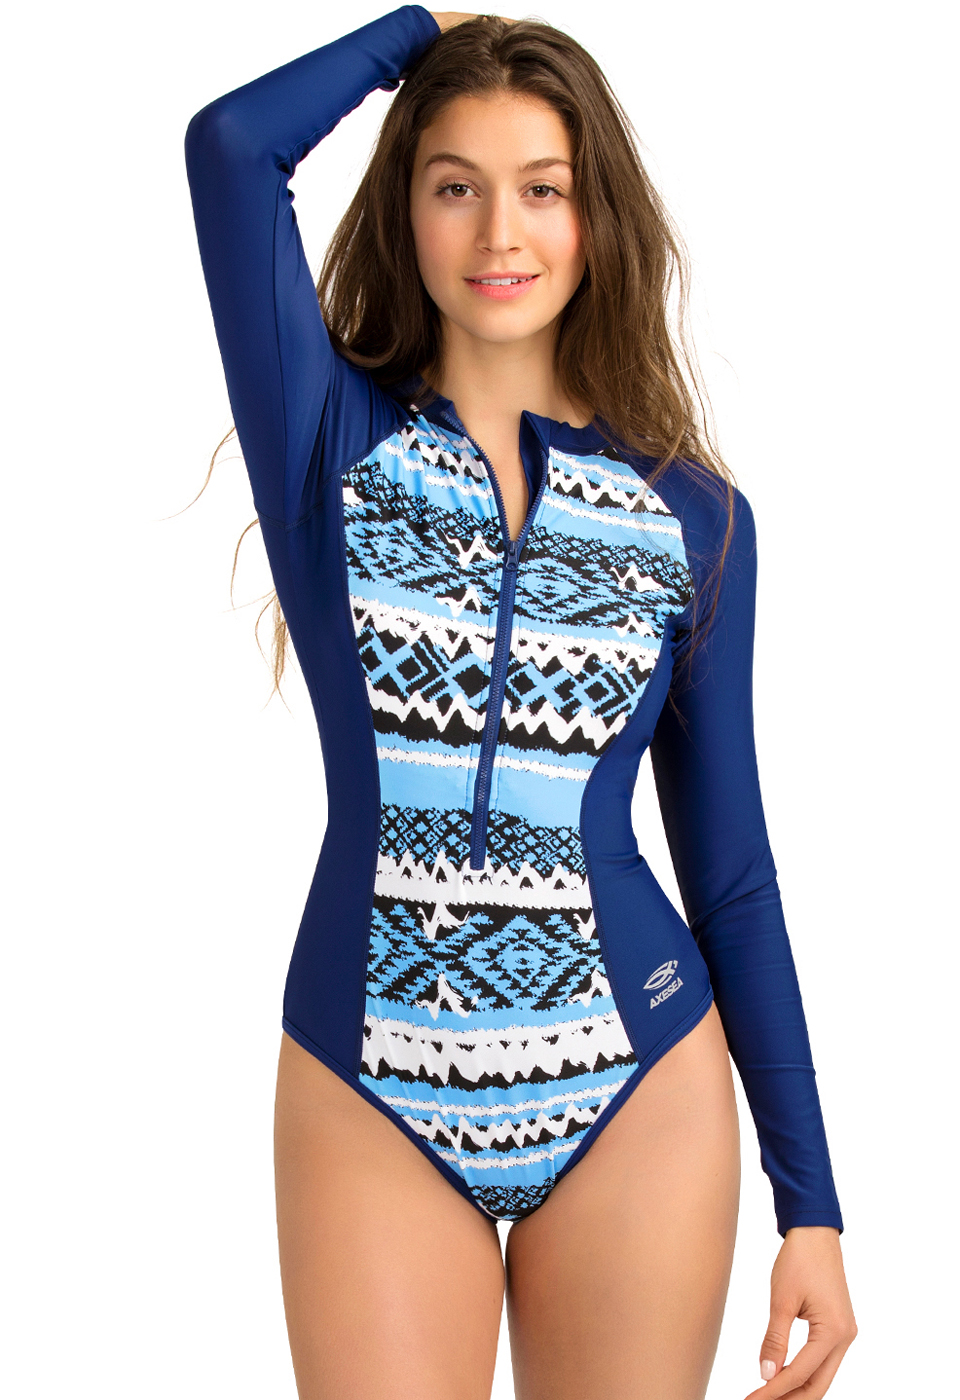 533c5e4d21 Details about AXESEA 2019 New Long Sleeve Rash Guard Diving Surf One Piece  Swimsuit Women